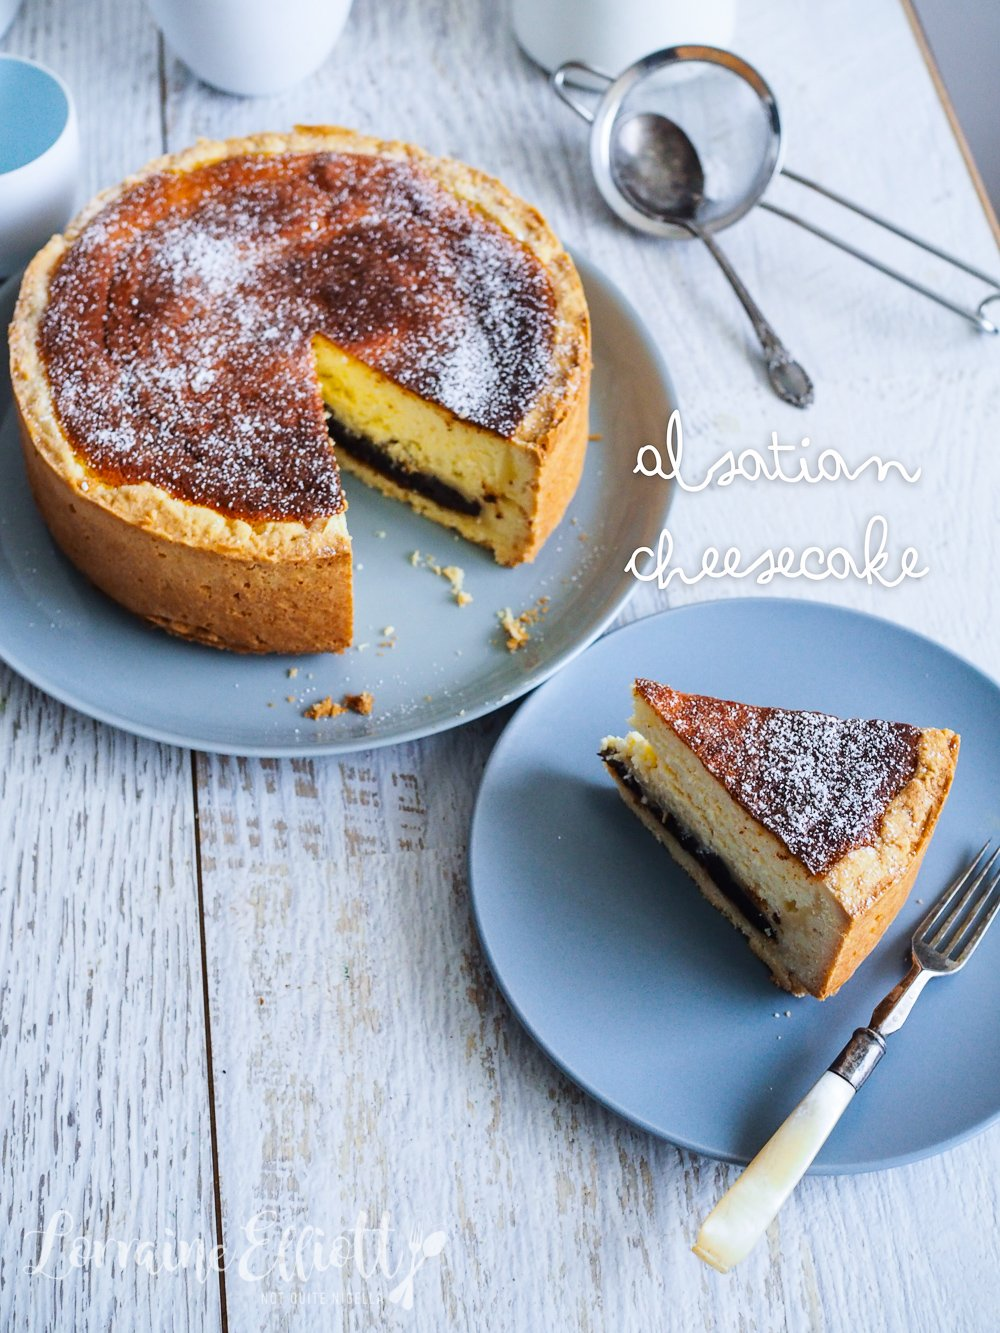 Alsace Cheesecake